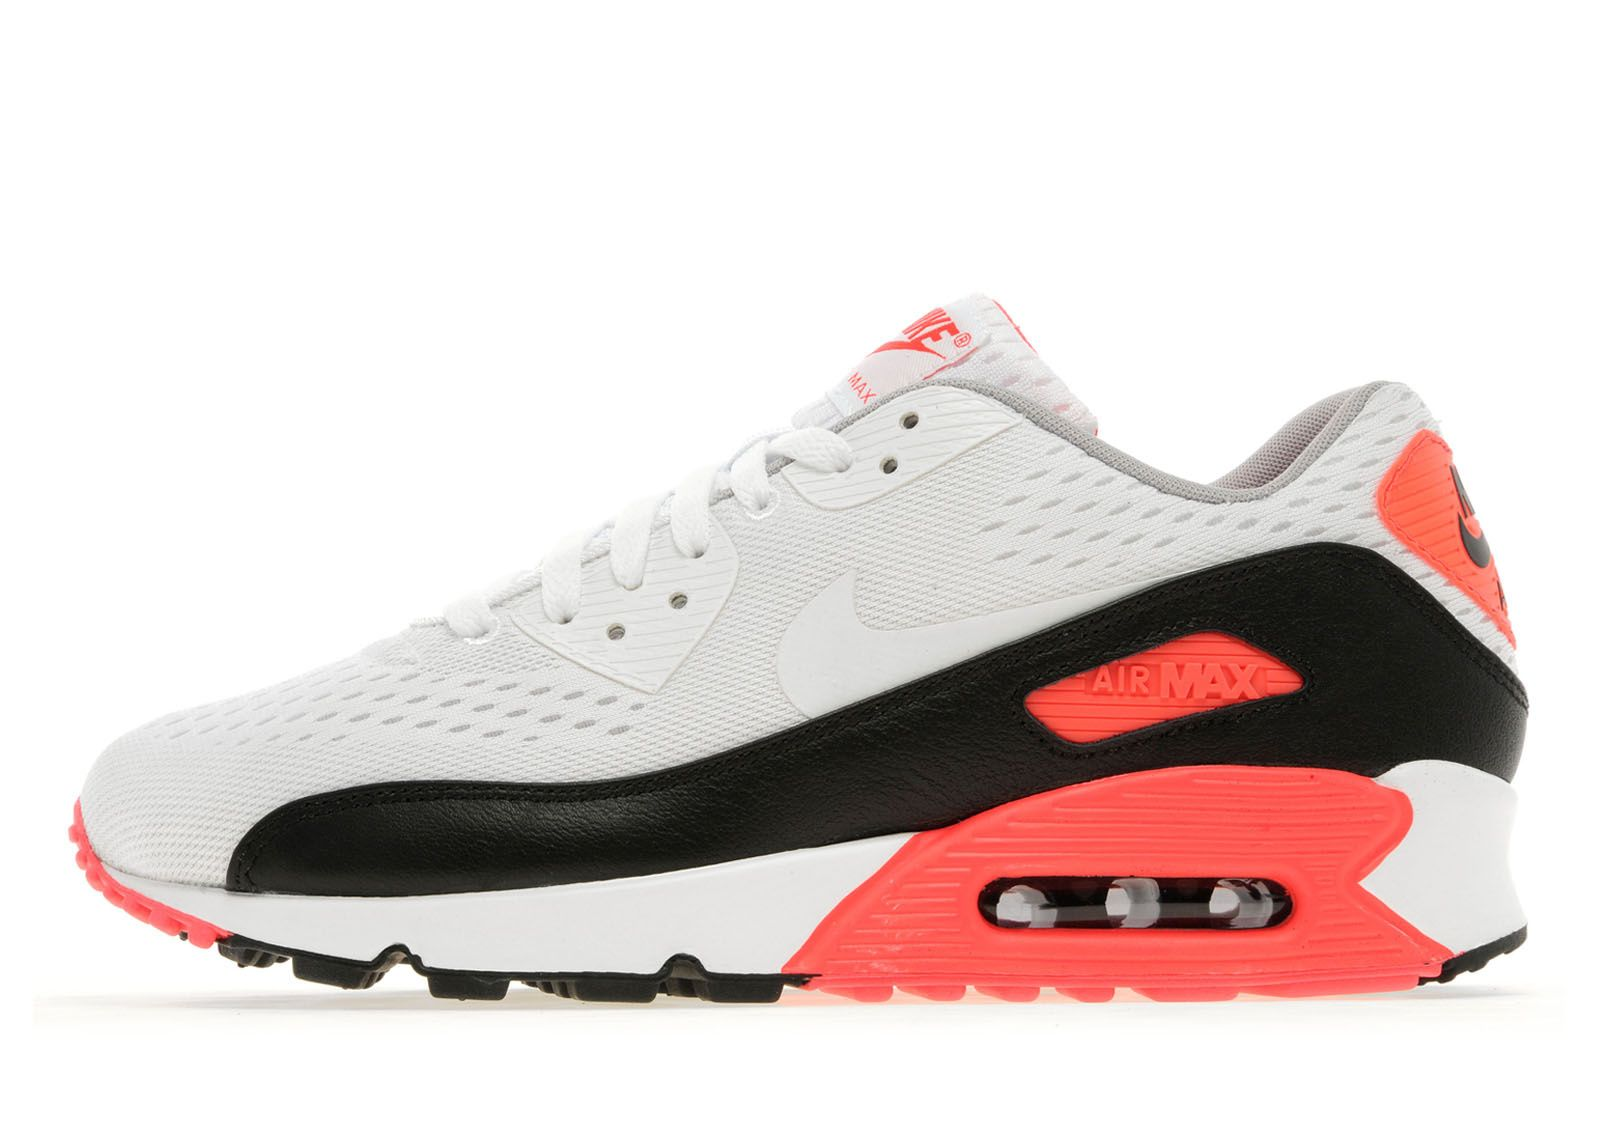 ikyll Nike Air Max 90 Engineered Mesh | JD Sports